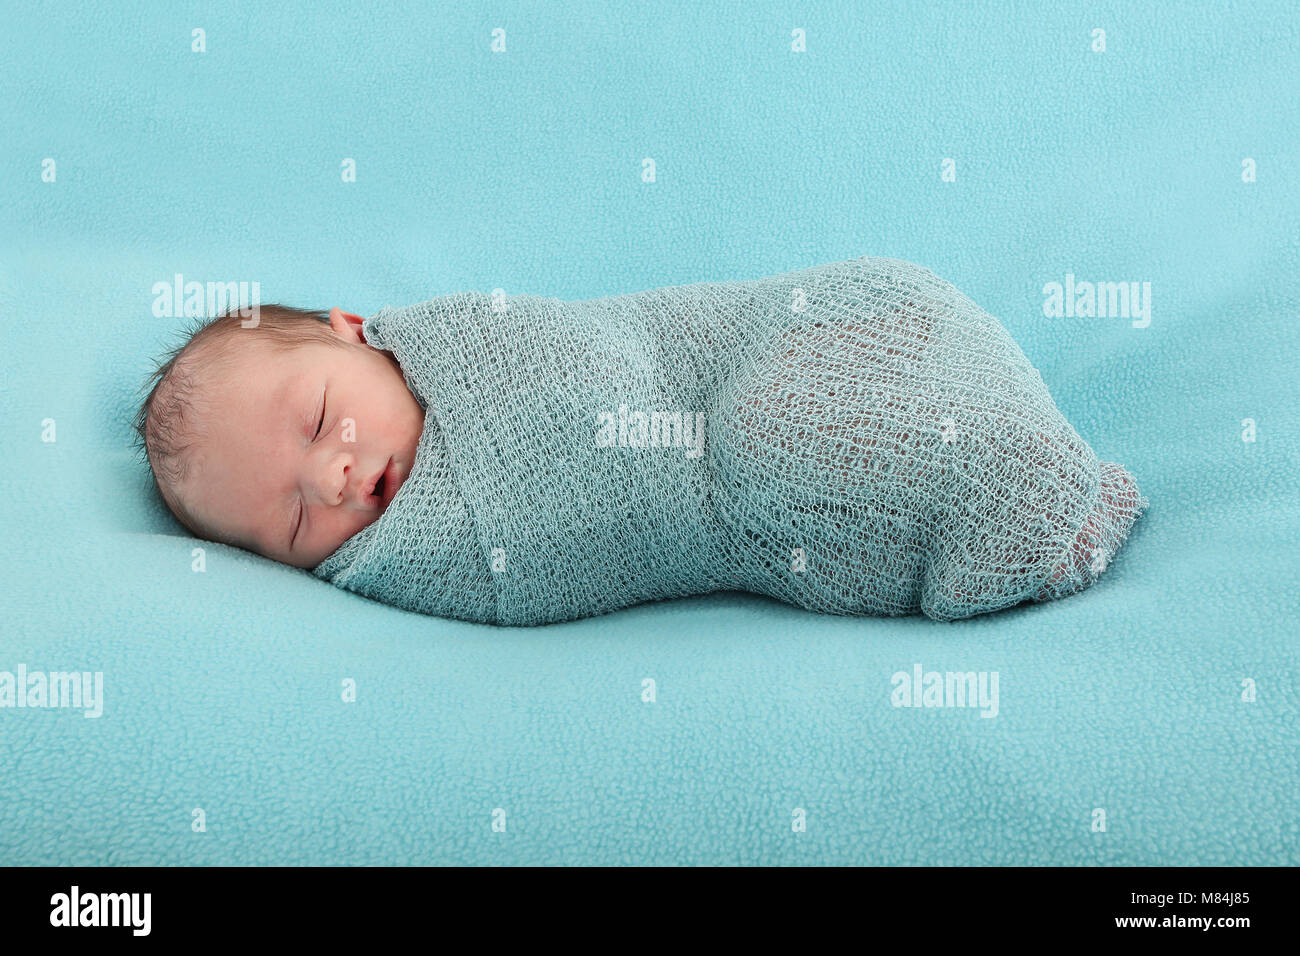 Newborn Baby Boy Happy And Confutable Swaddled In Soft Blanket In